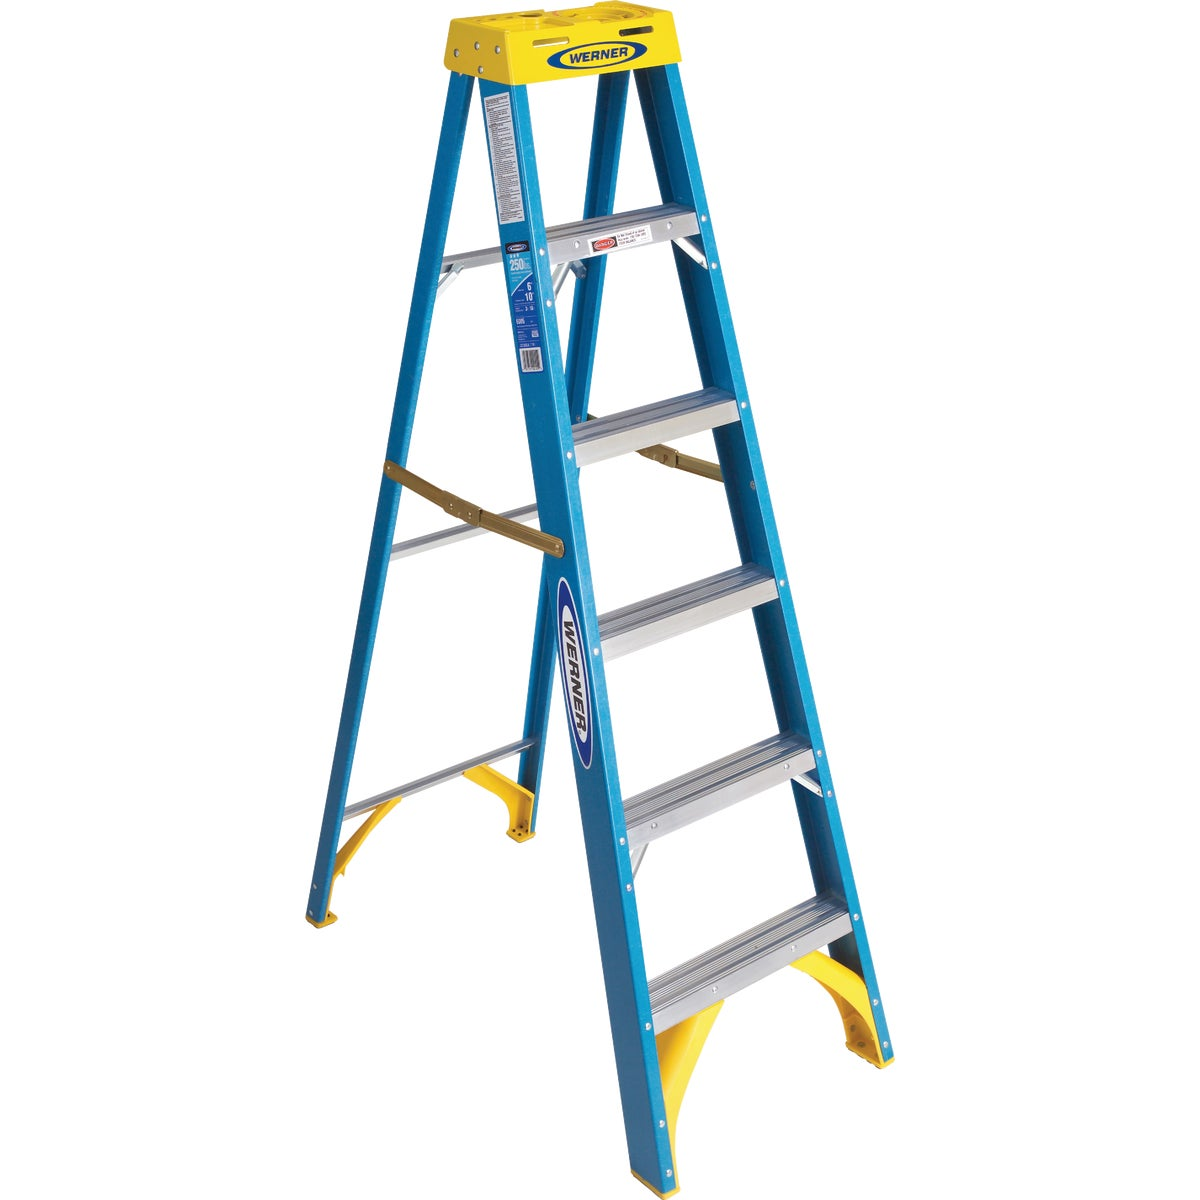 T-1 6' FBGL STEPLADDER - 6006 by Werner Co